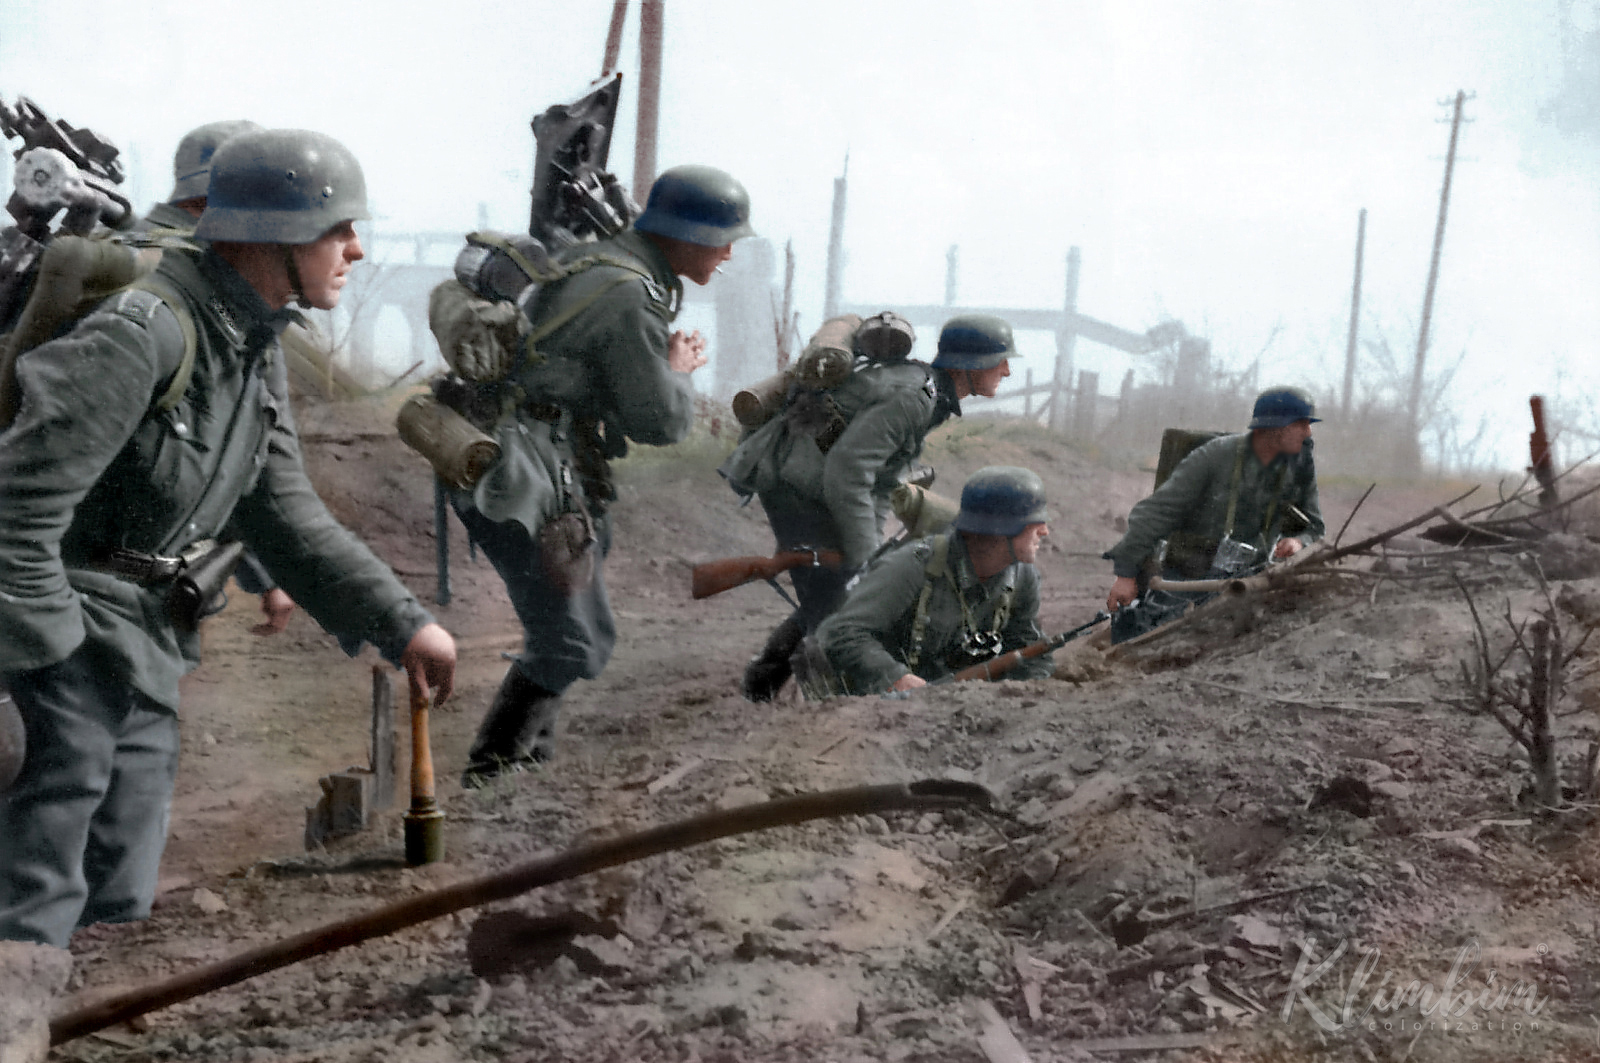 German troops of the 6th Army move into the suburbs of Stalingrad, late Sept 1942